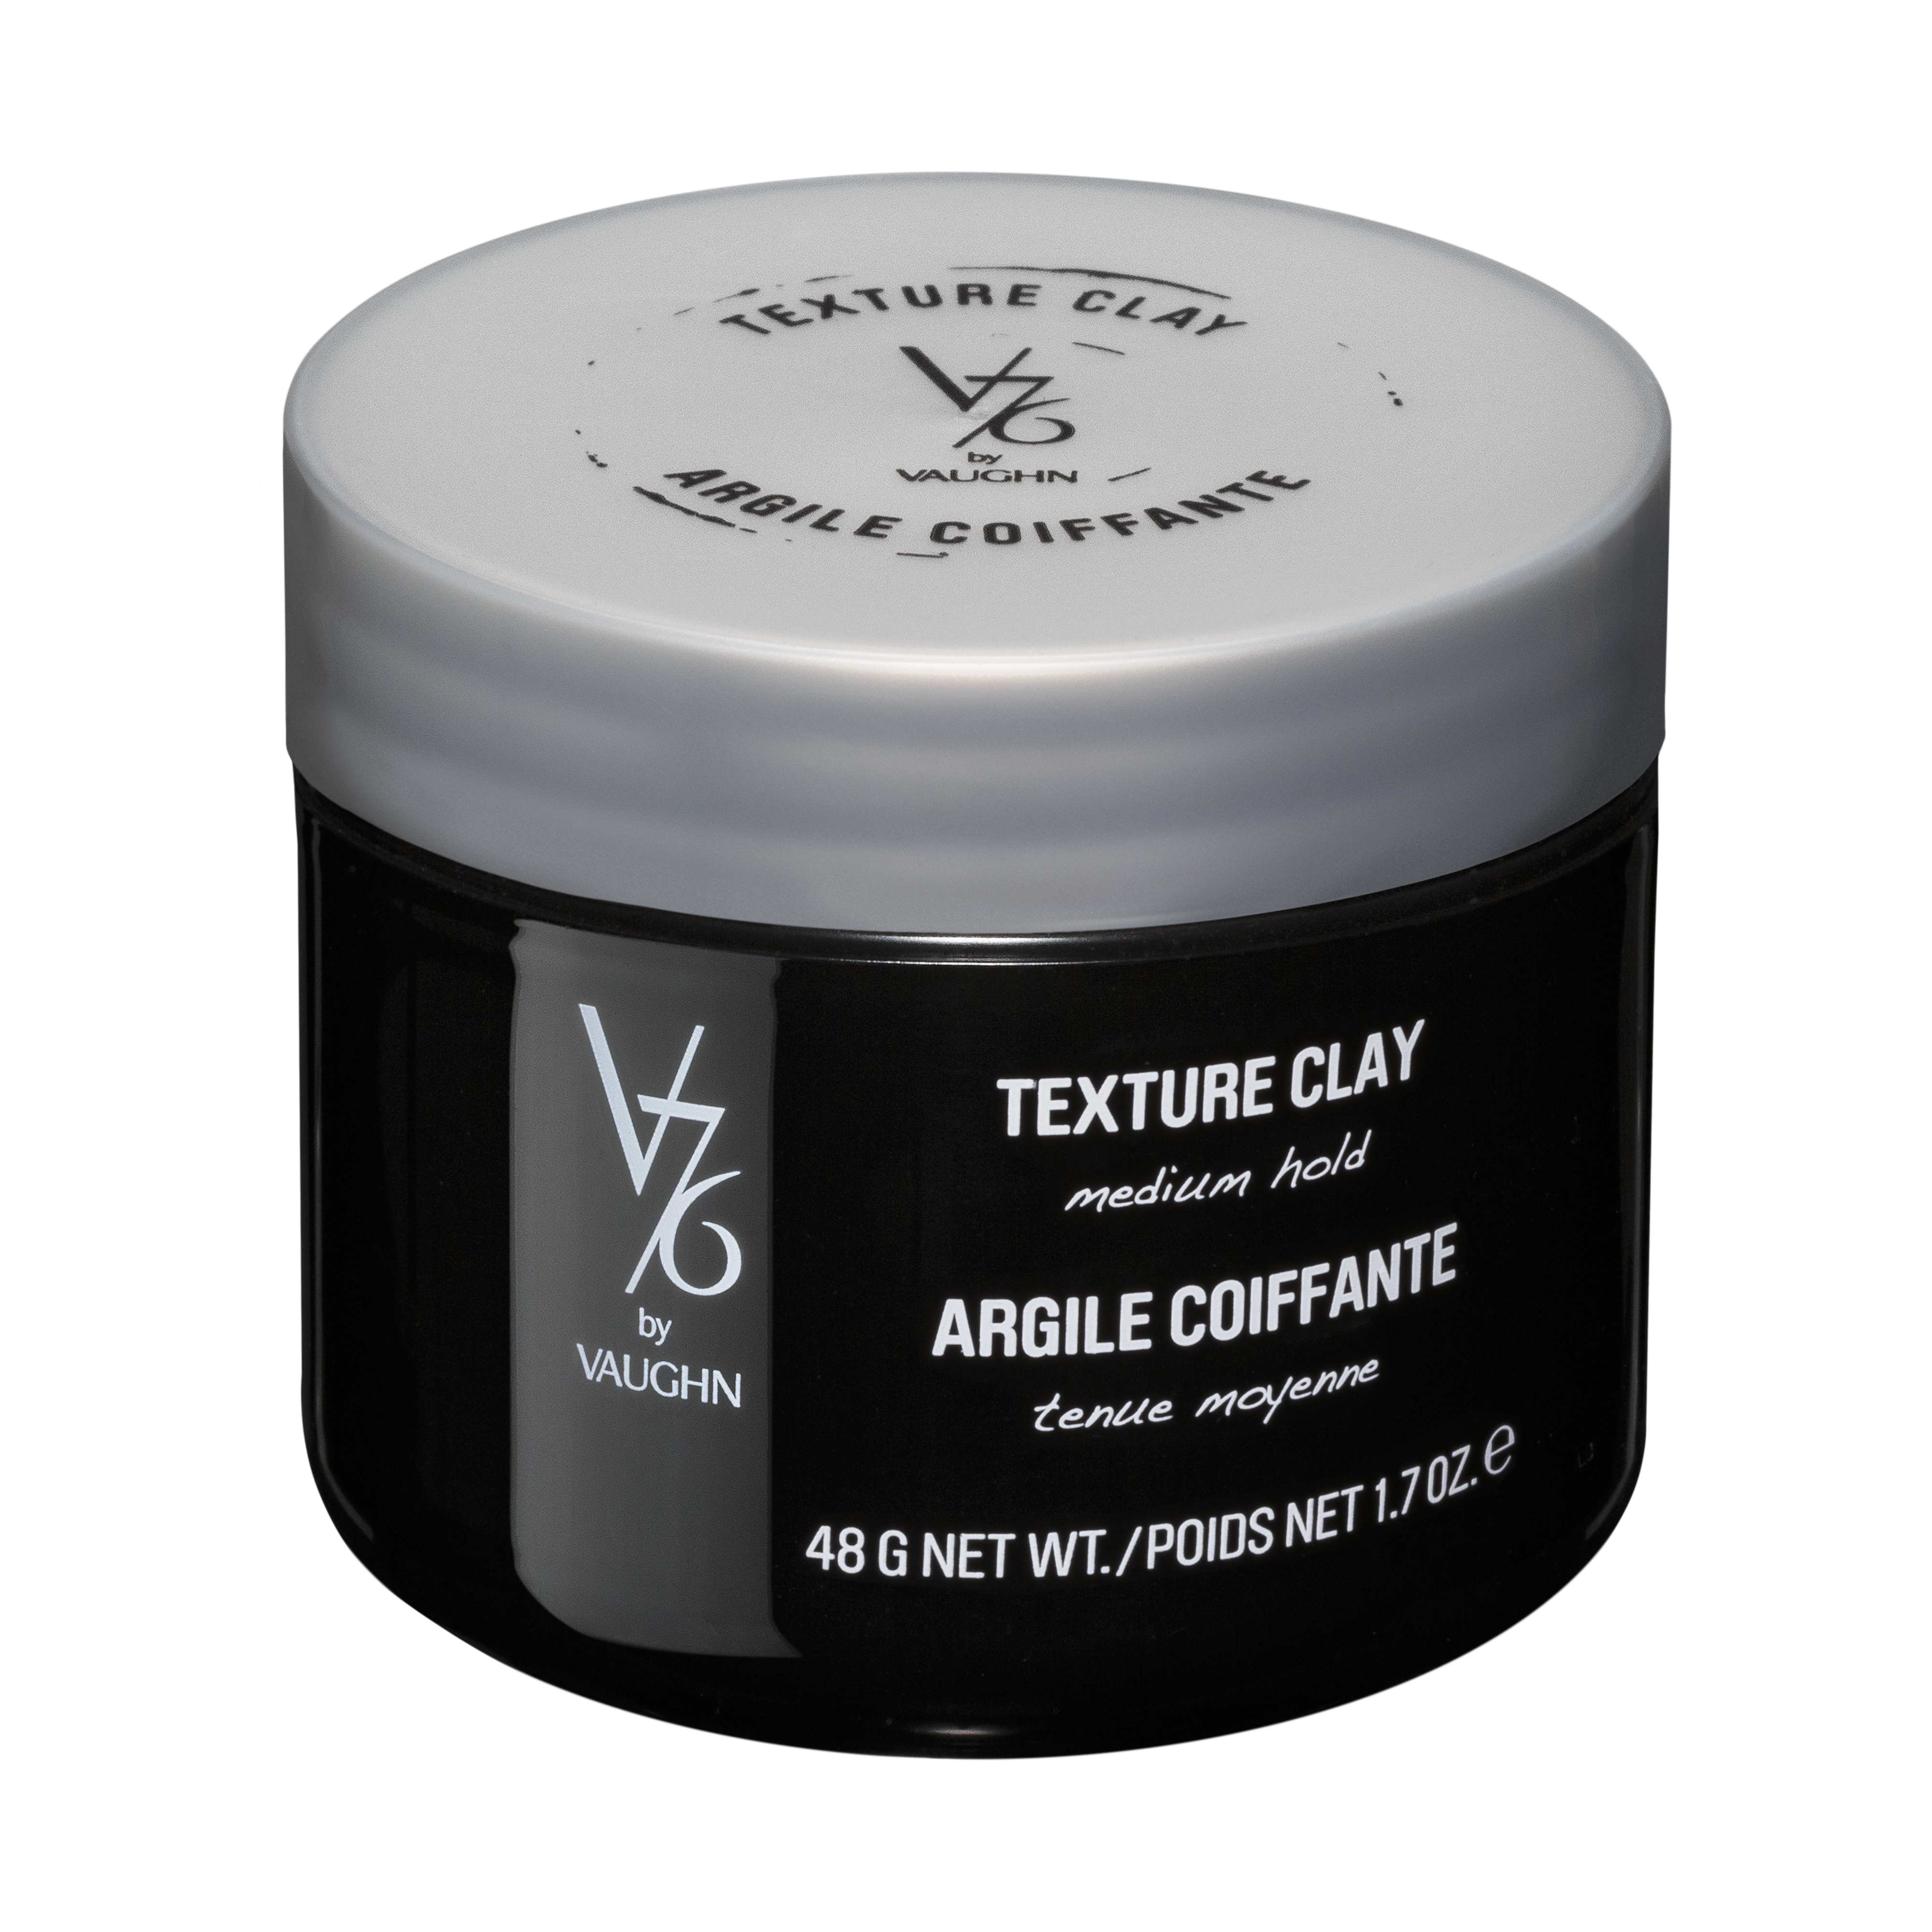 Texture Clay Texture Clay 48 g